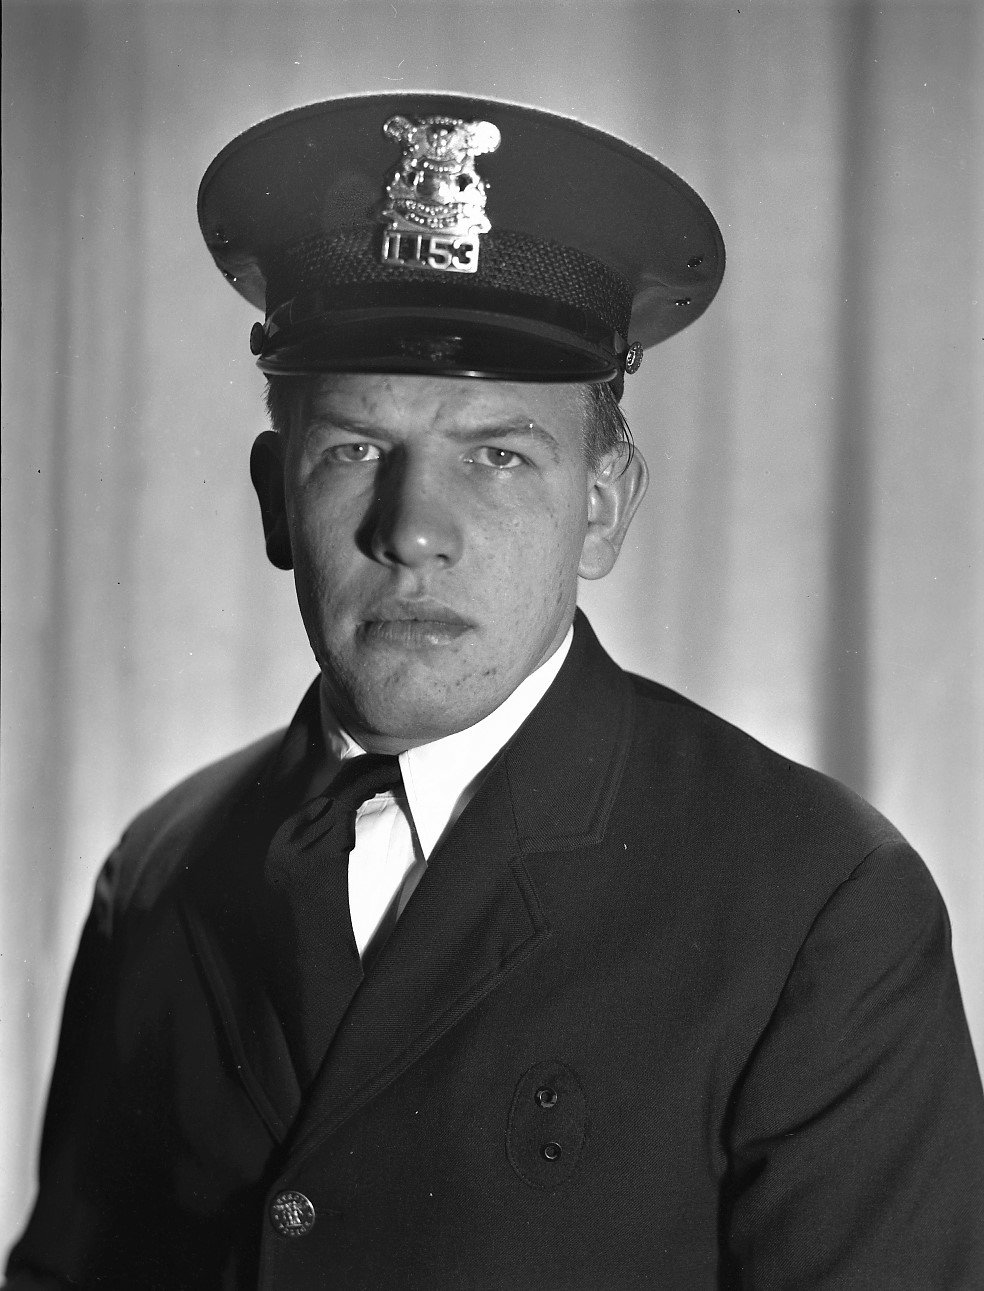 Police Officer Henry Joseph Mach | Detroit Police Department, Michigan